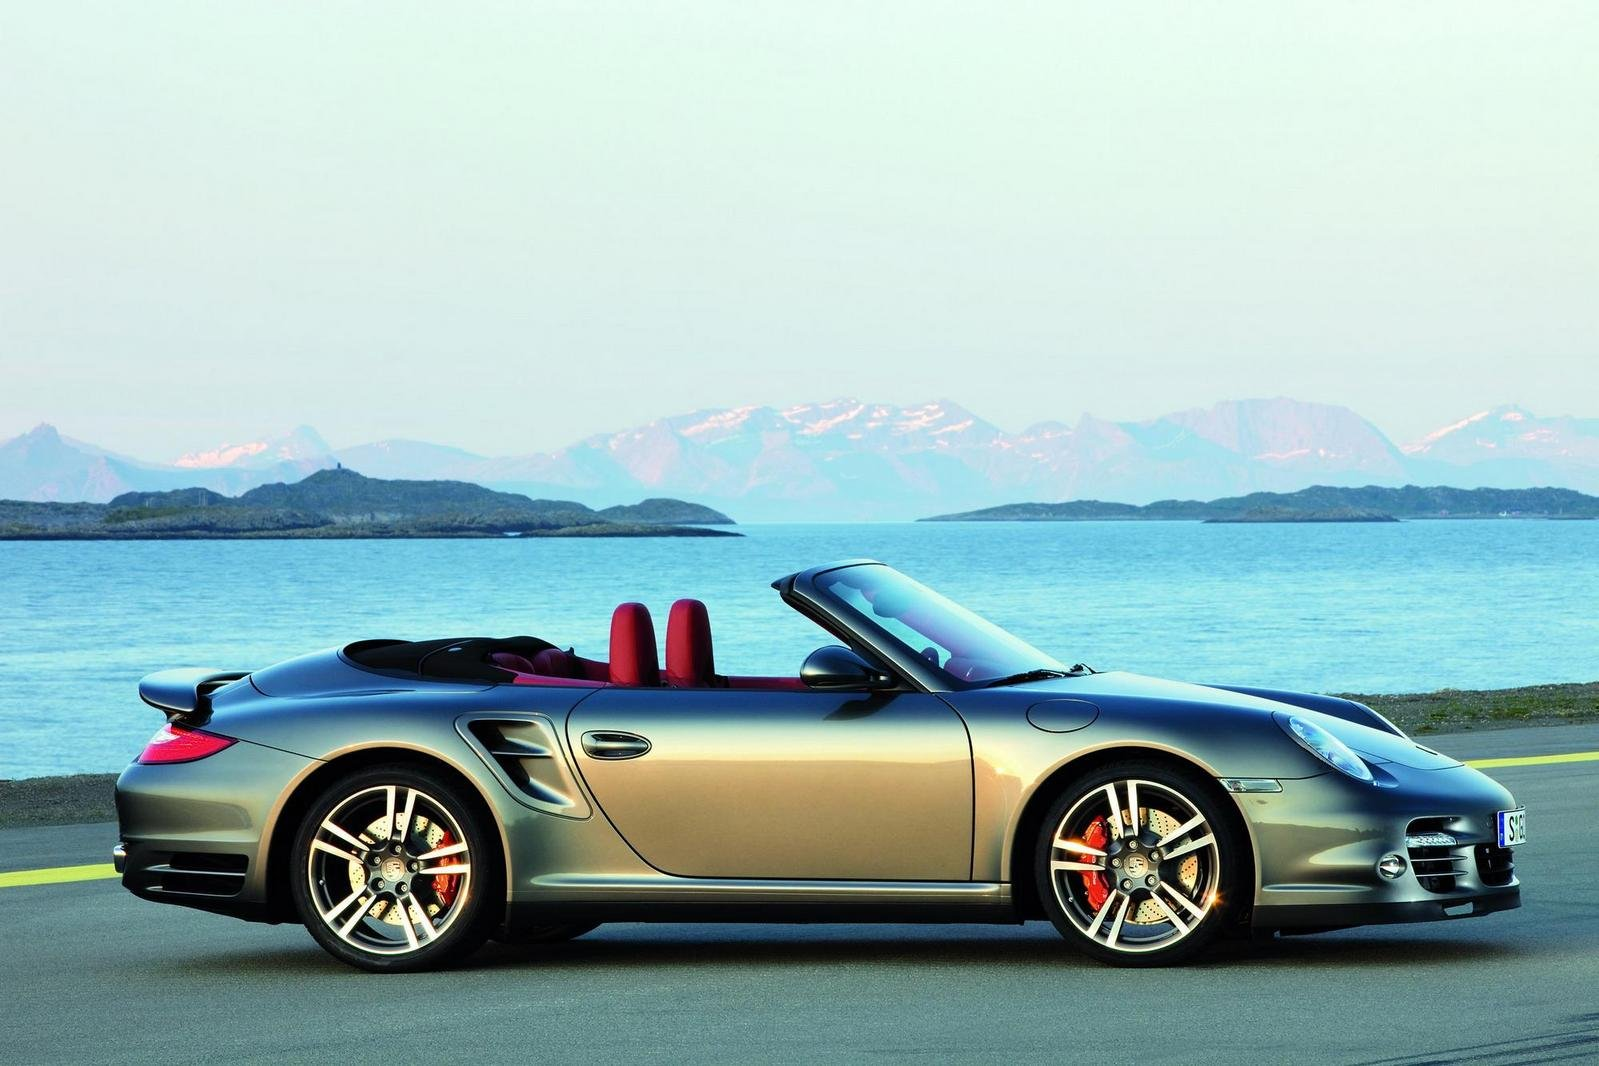 2010 porsche 911 turbo picture 326731 car review top speed. Black Bedroom Furniture Sets. Home Design Ideas